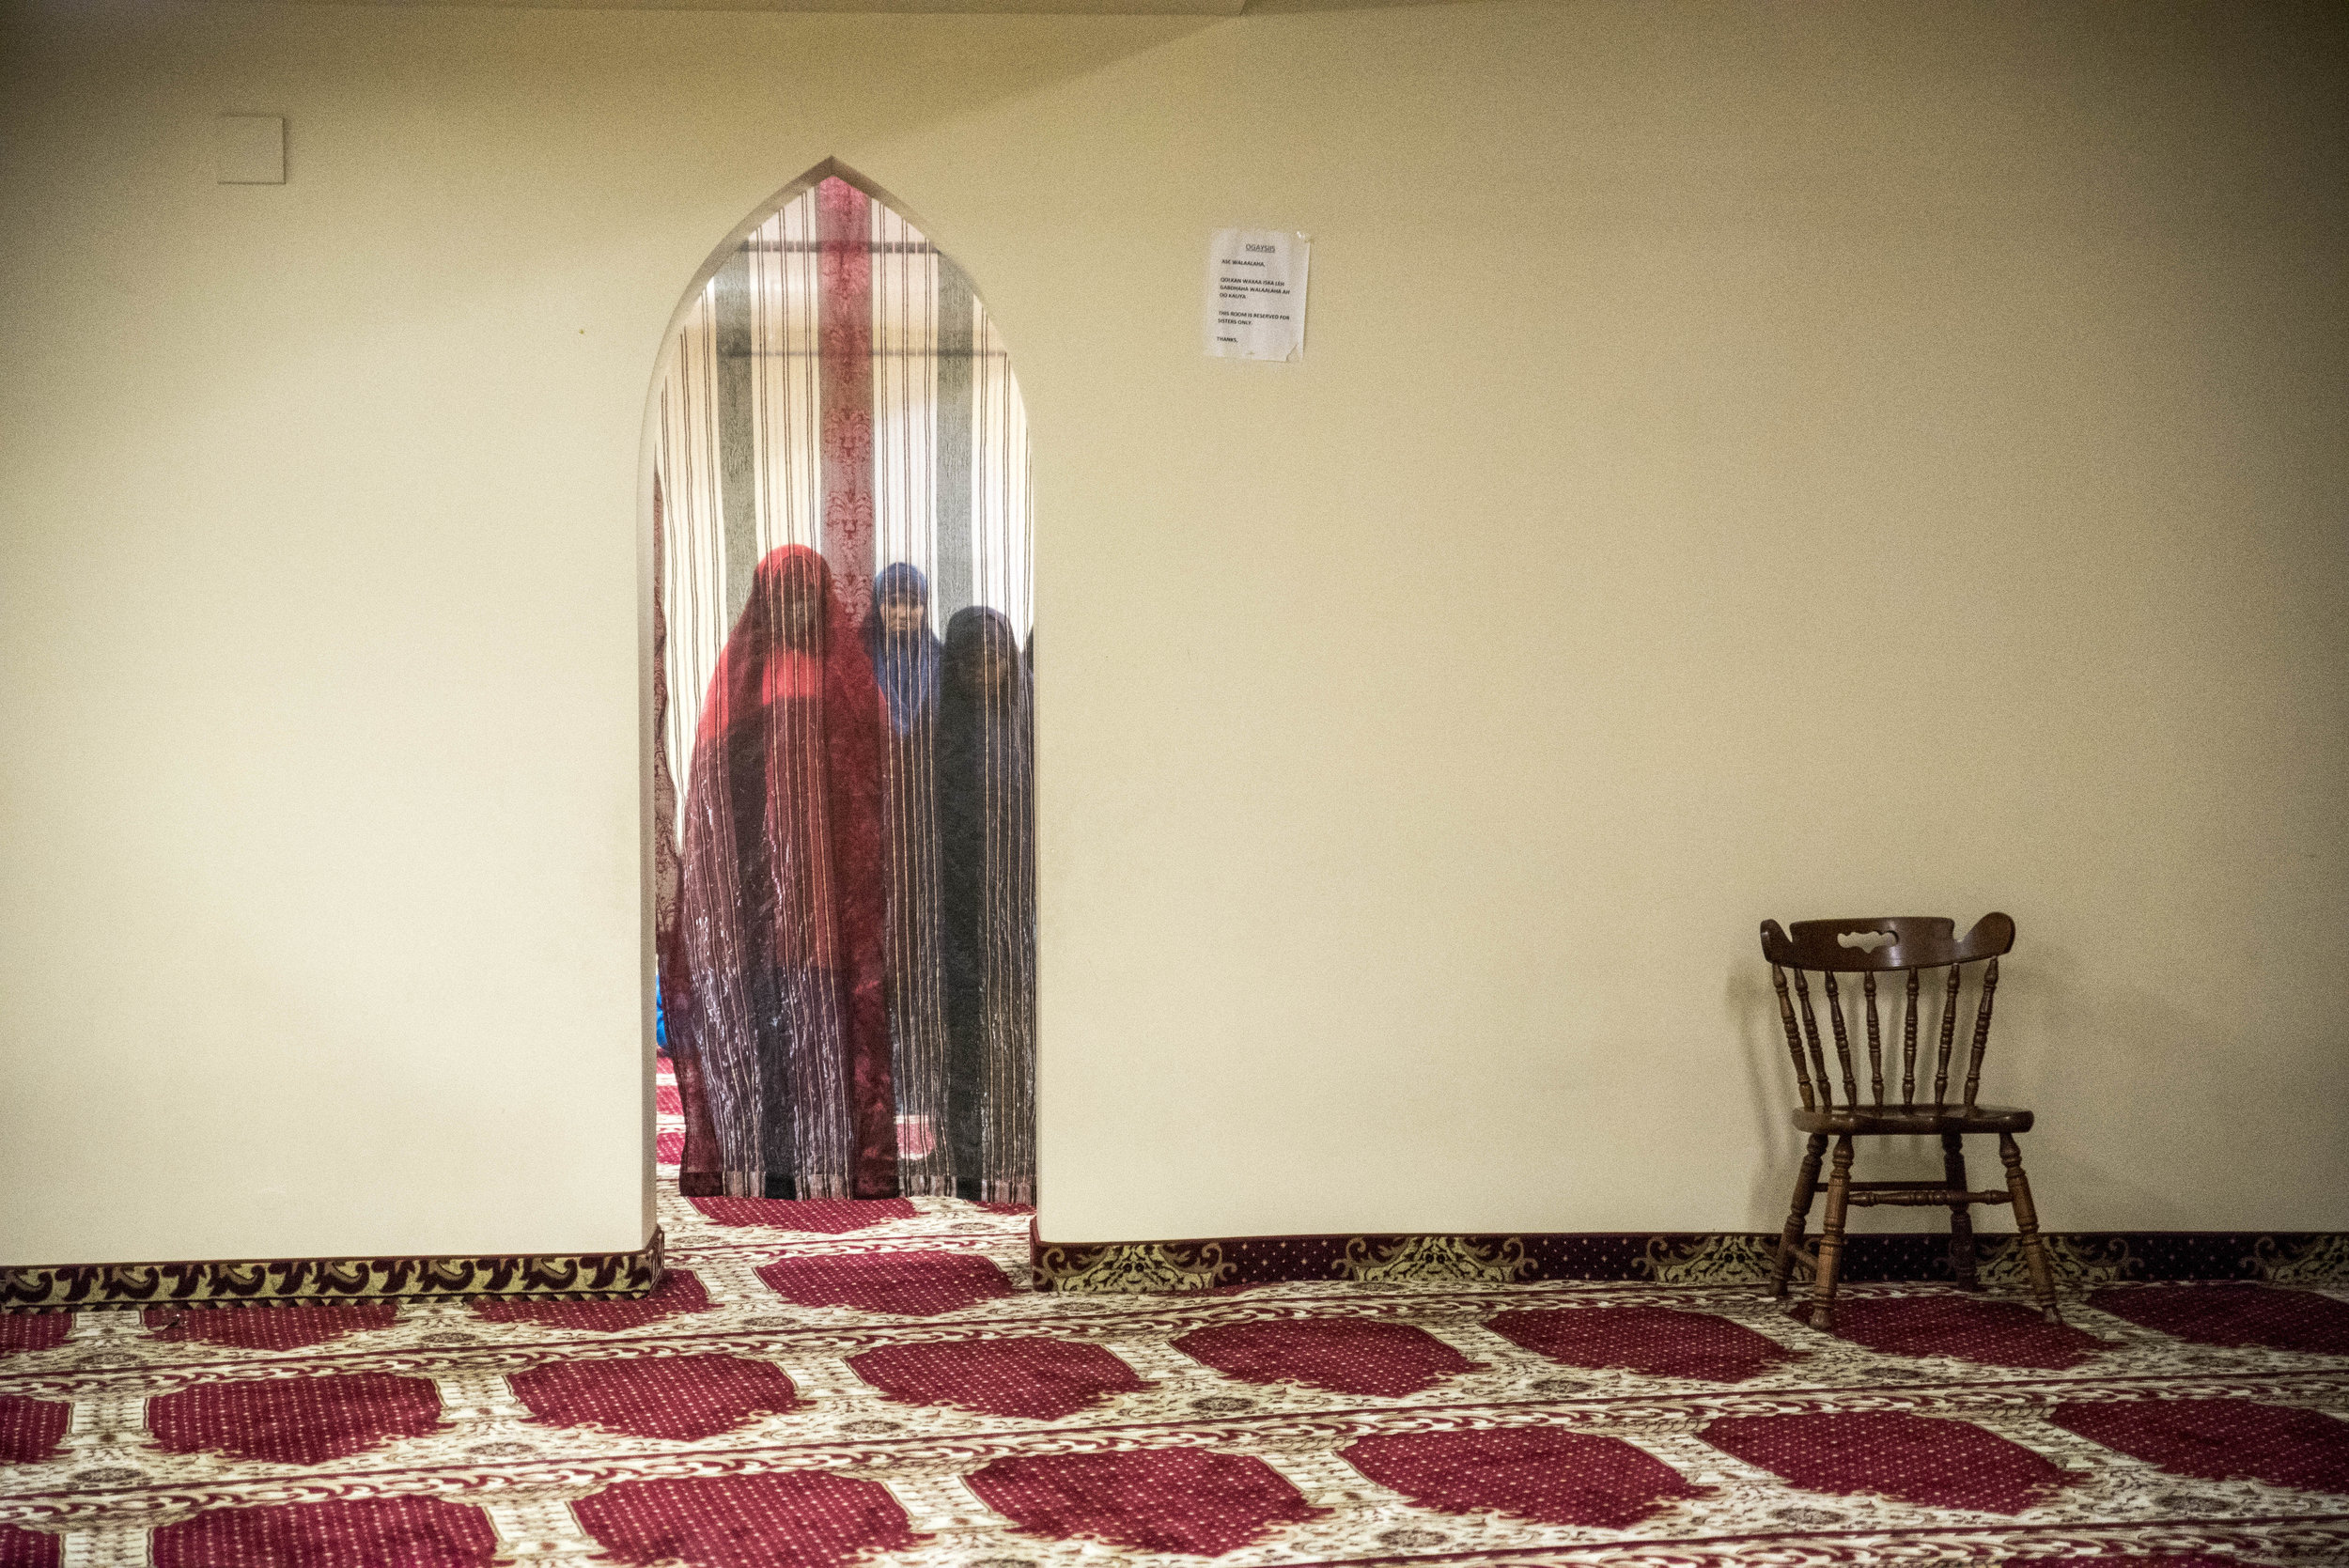 WILLMAR, MN - Mosque members conduct their evening prayer behind curtains at the Islamic Society during Ramadan May 31.